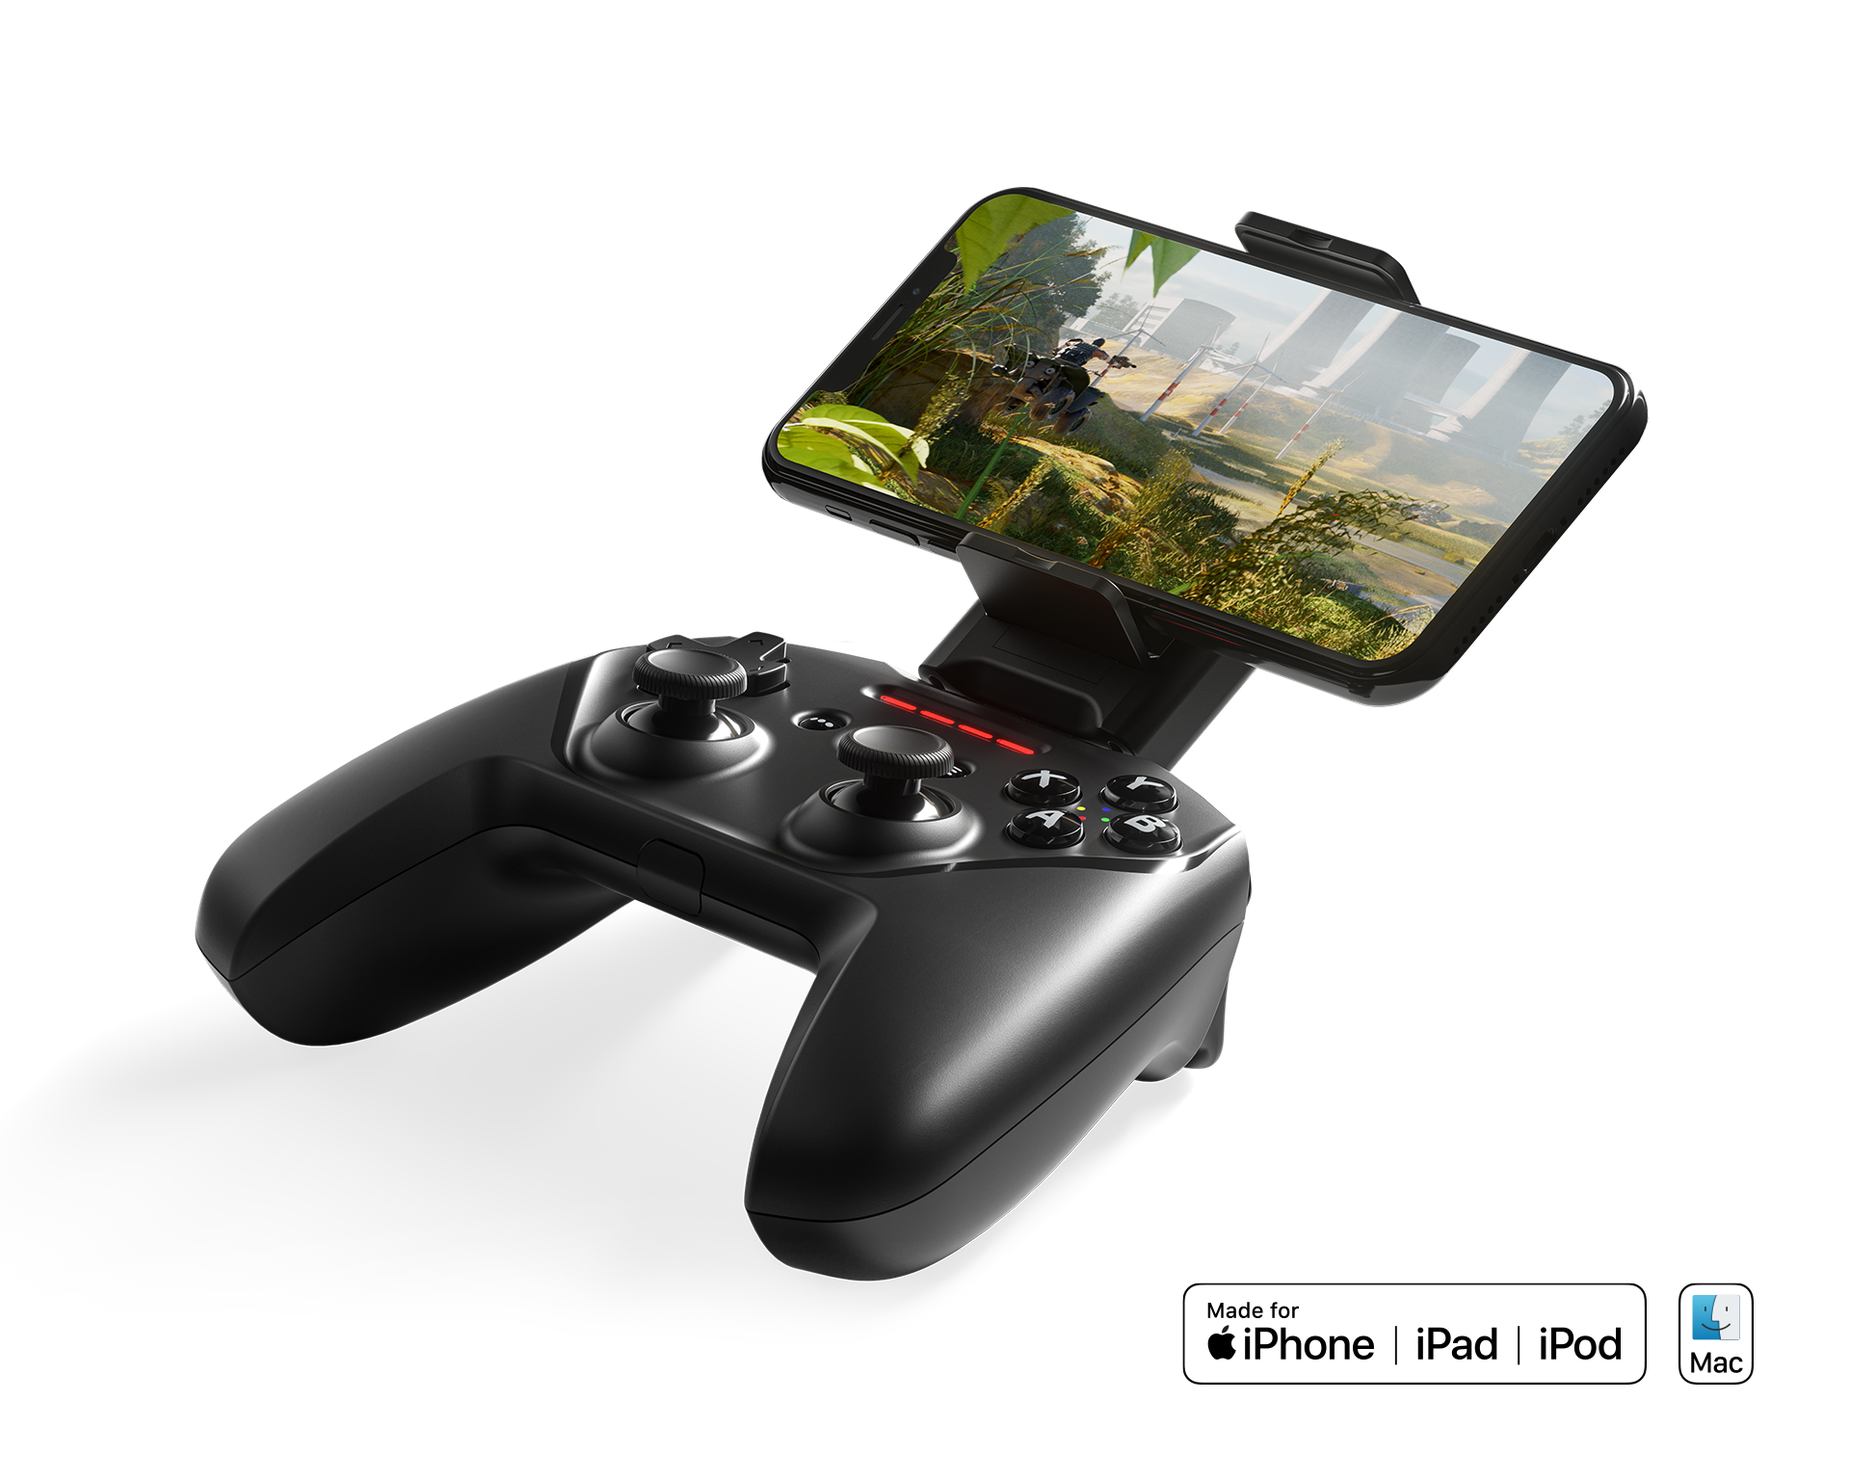 Nimbus + shown with iOS mobile device using included mount; Made for iPhone | iPad | iPod and Mac OS